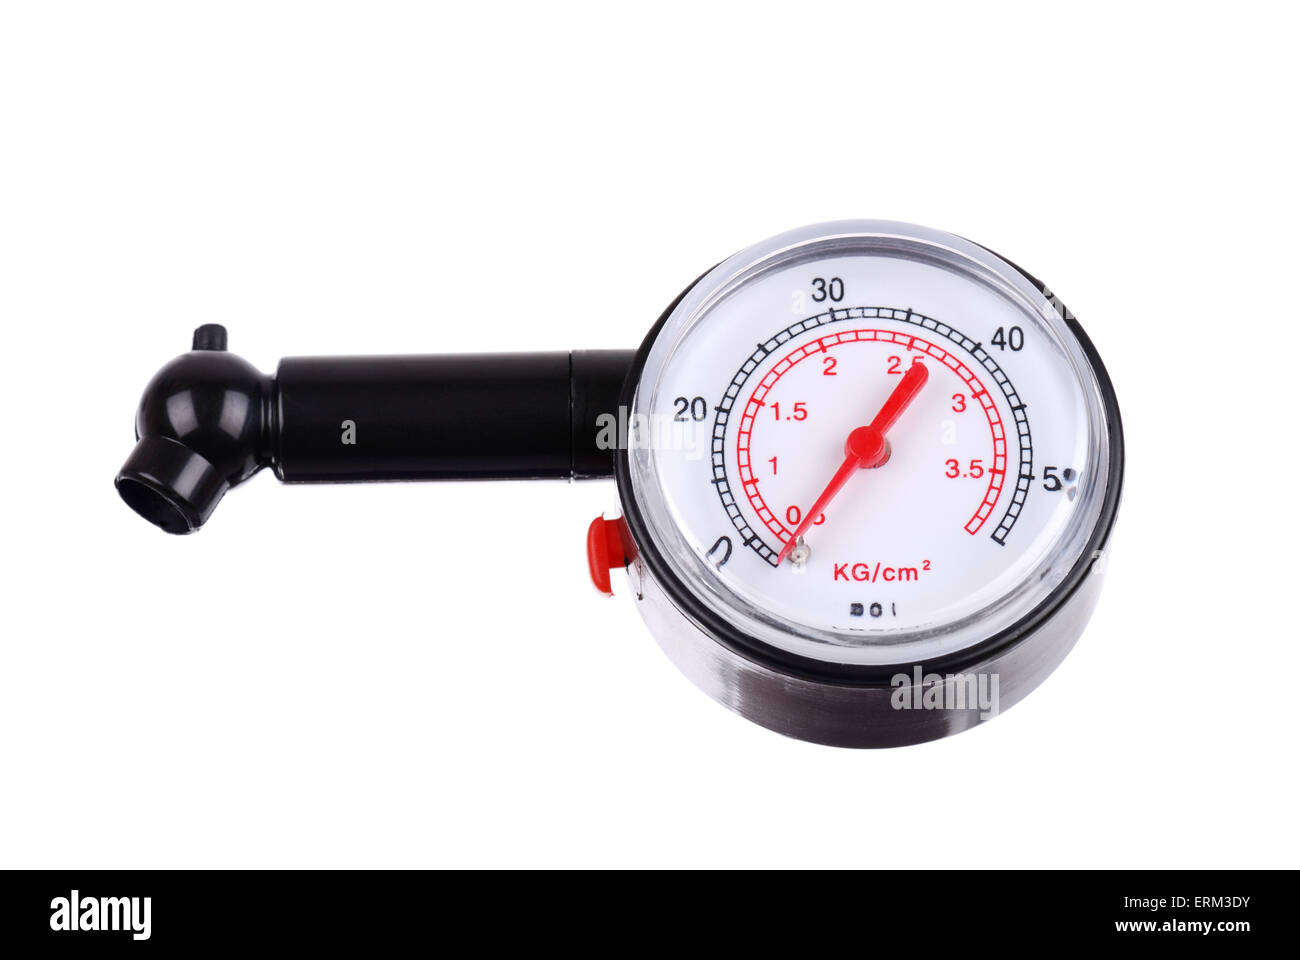 Manometer for measuring tire pressure isolated - Stock Image